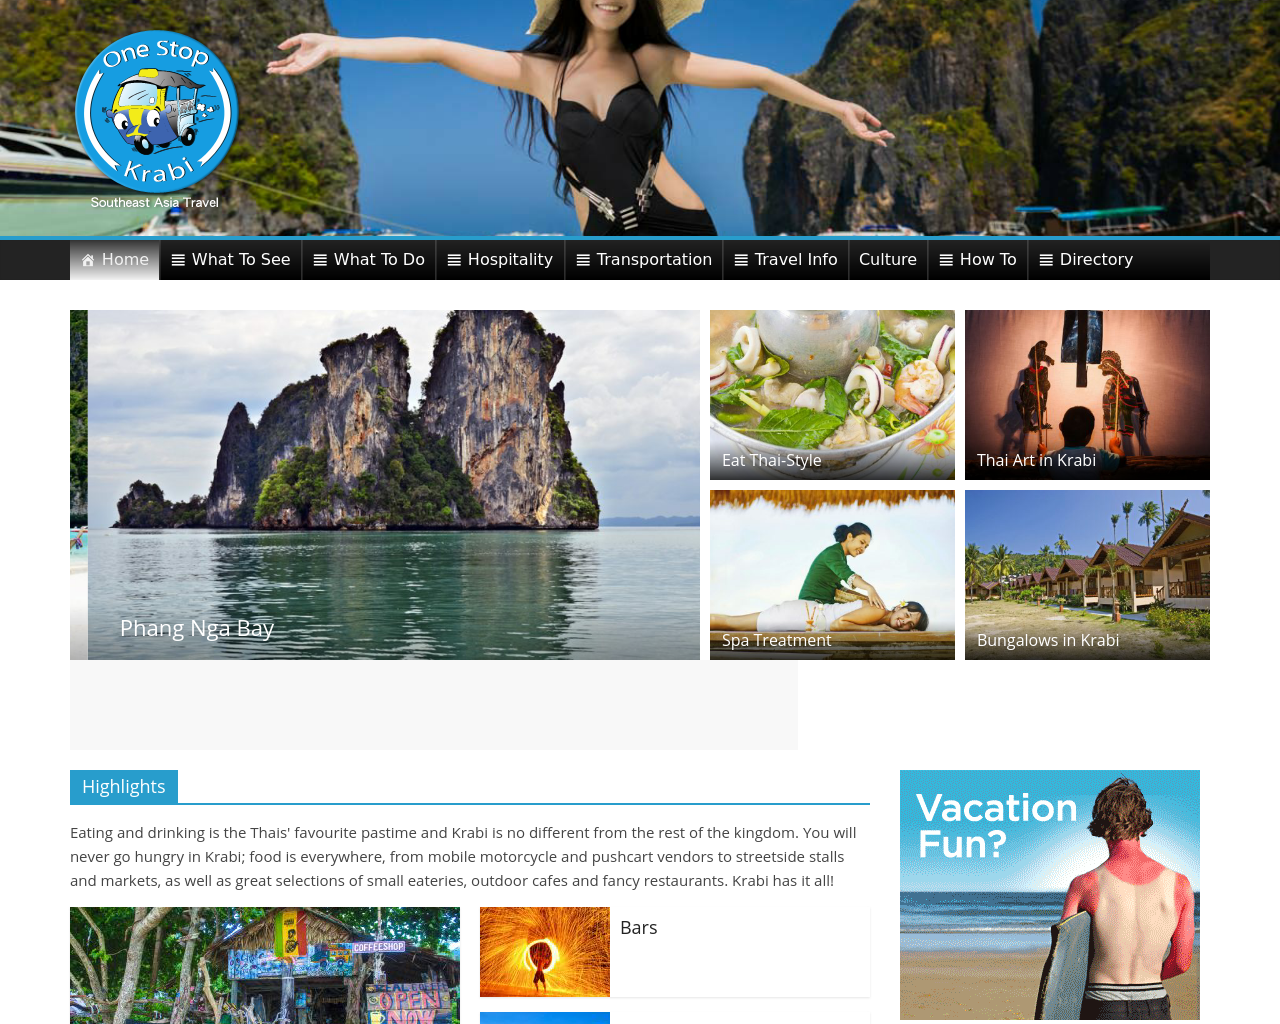 1stop-Krabi-Advertising-Reviews-Pricing